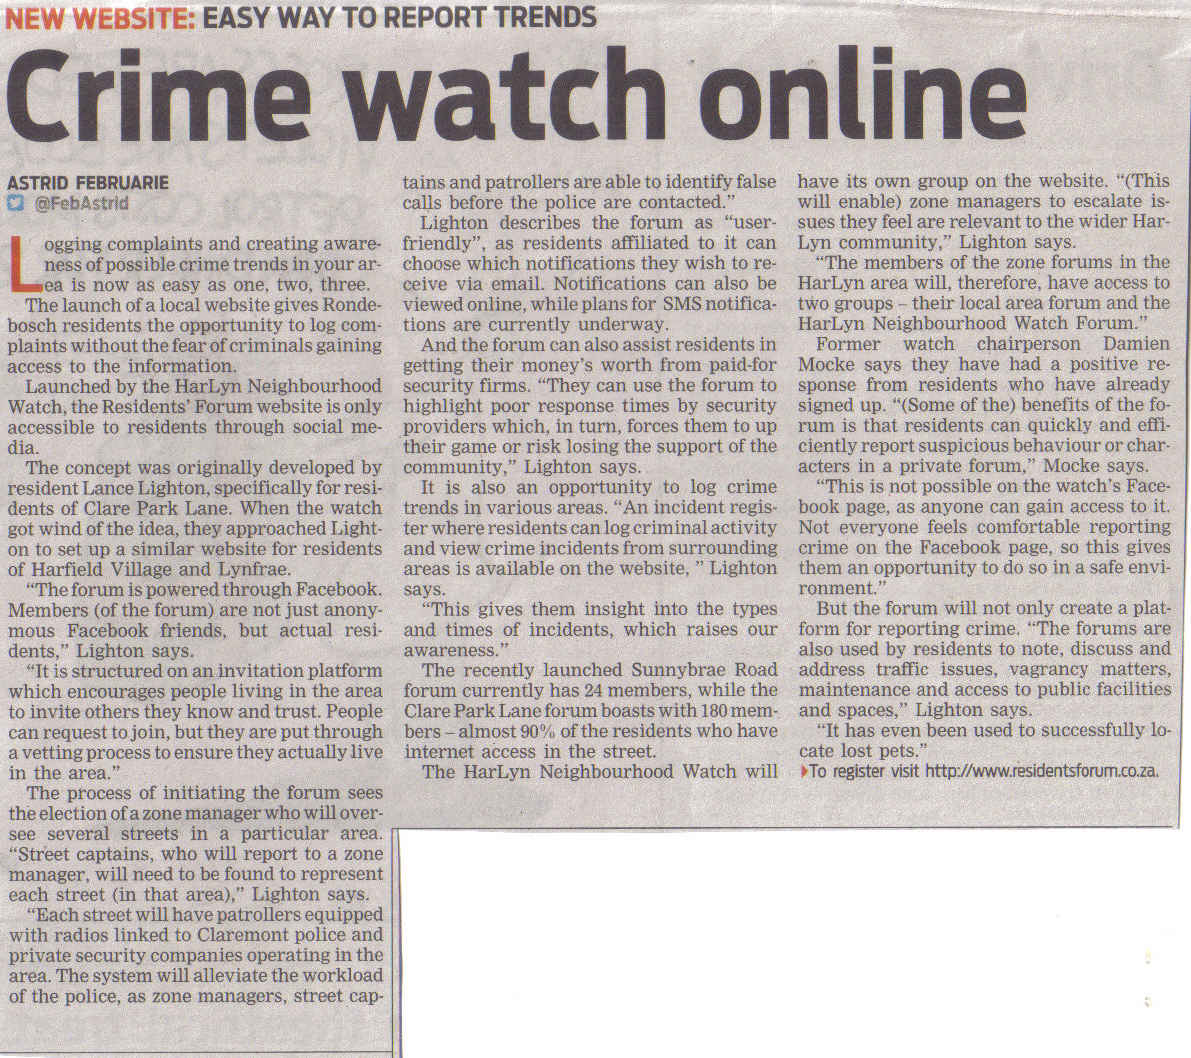 Crime watch online New website - easy to report trends (People's Post, 6 February 2014)